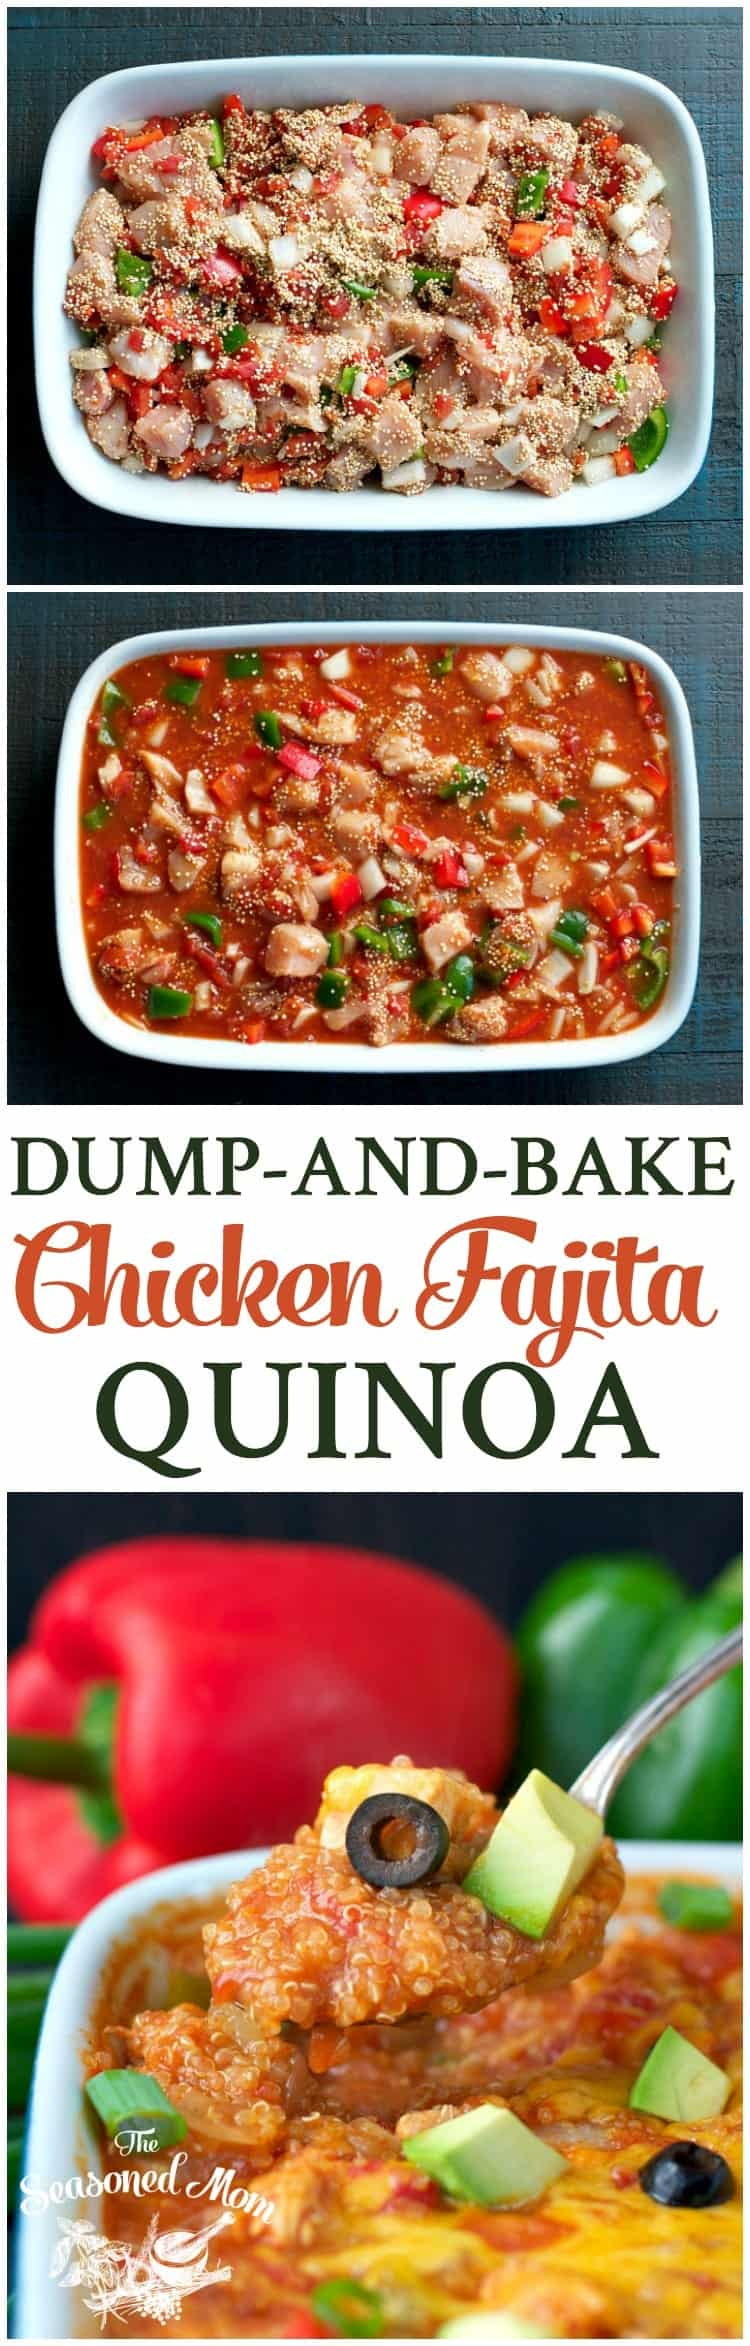 This easy Dump-and-Bake Chicken Fajita Quinoa is an easy and healthy dinner casserole that cooks entirely in one dish!